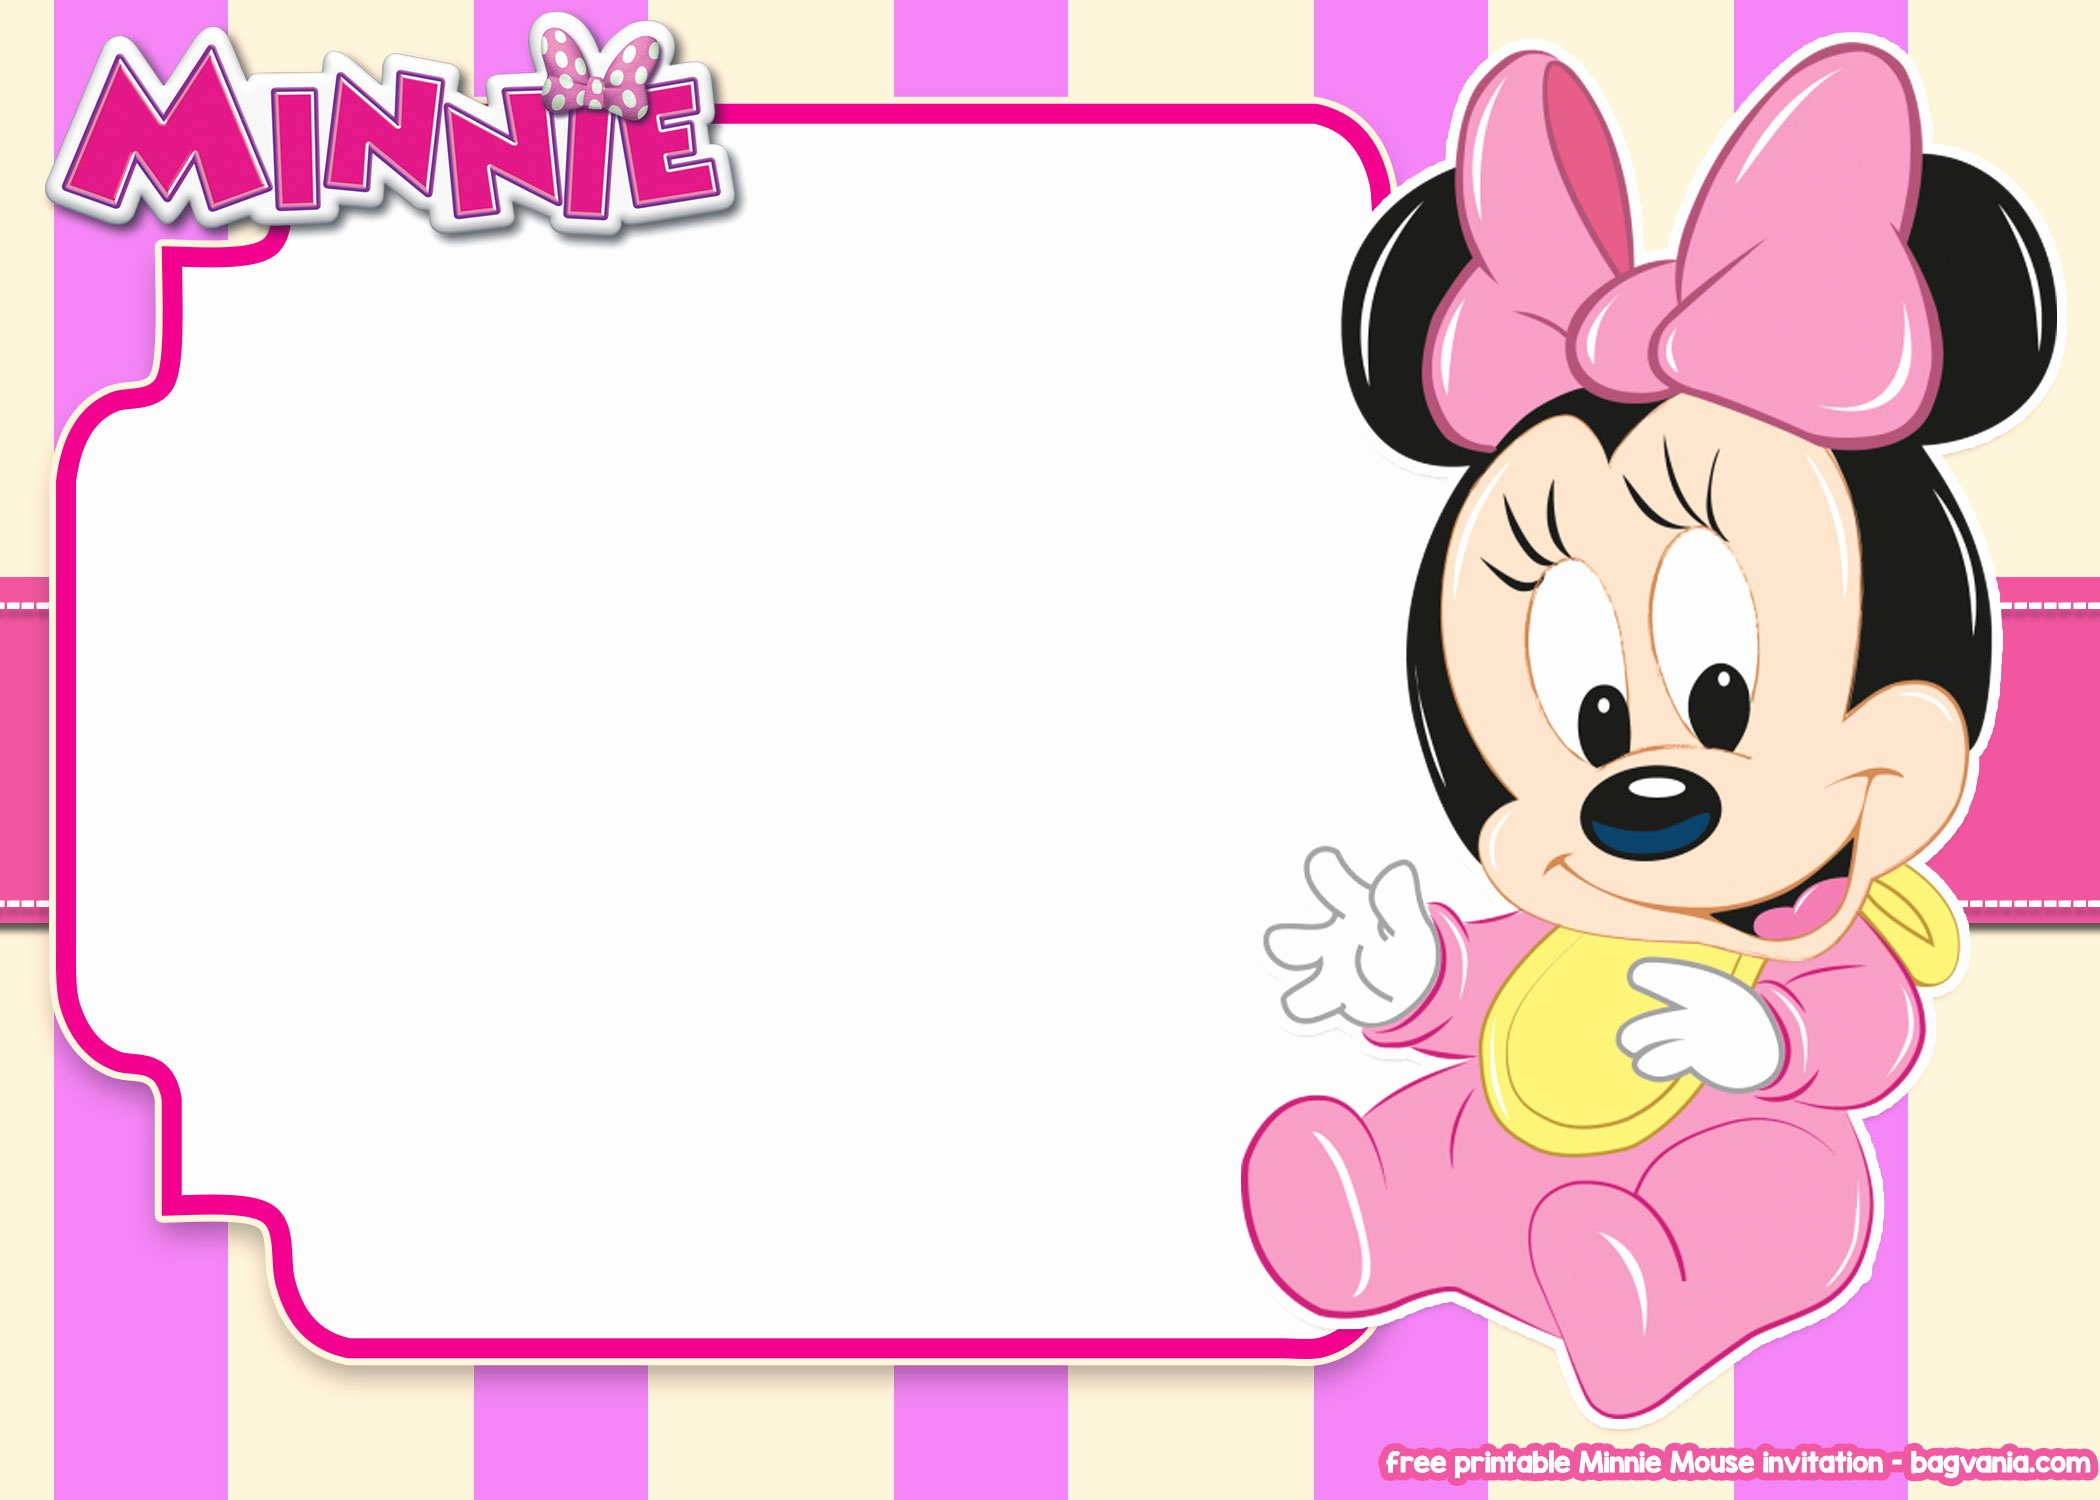 Minnie Mouse Blank Invitation Best Of 14 Free Printable Minnie Mouse All Ages Invitation